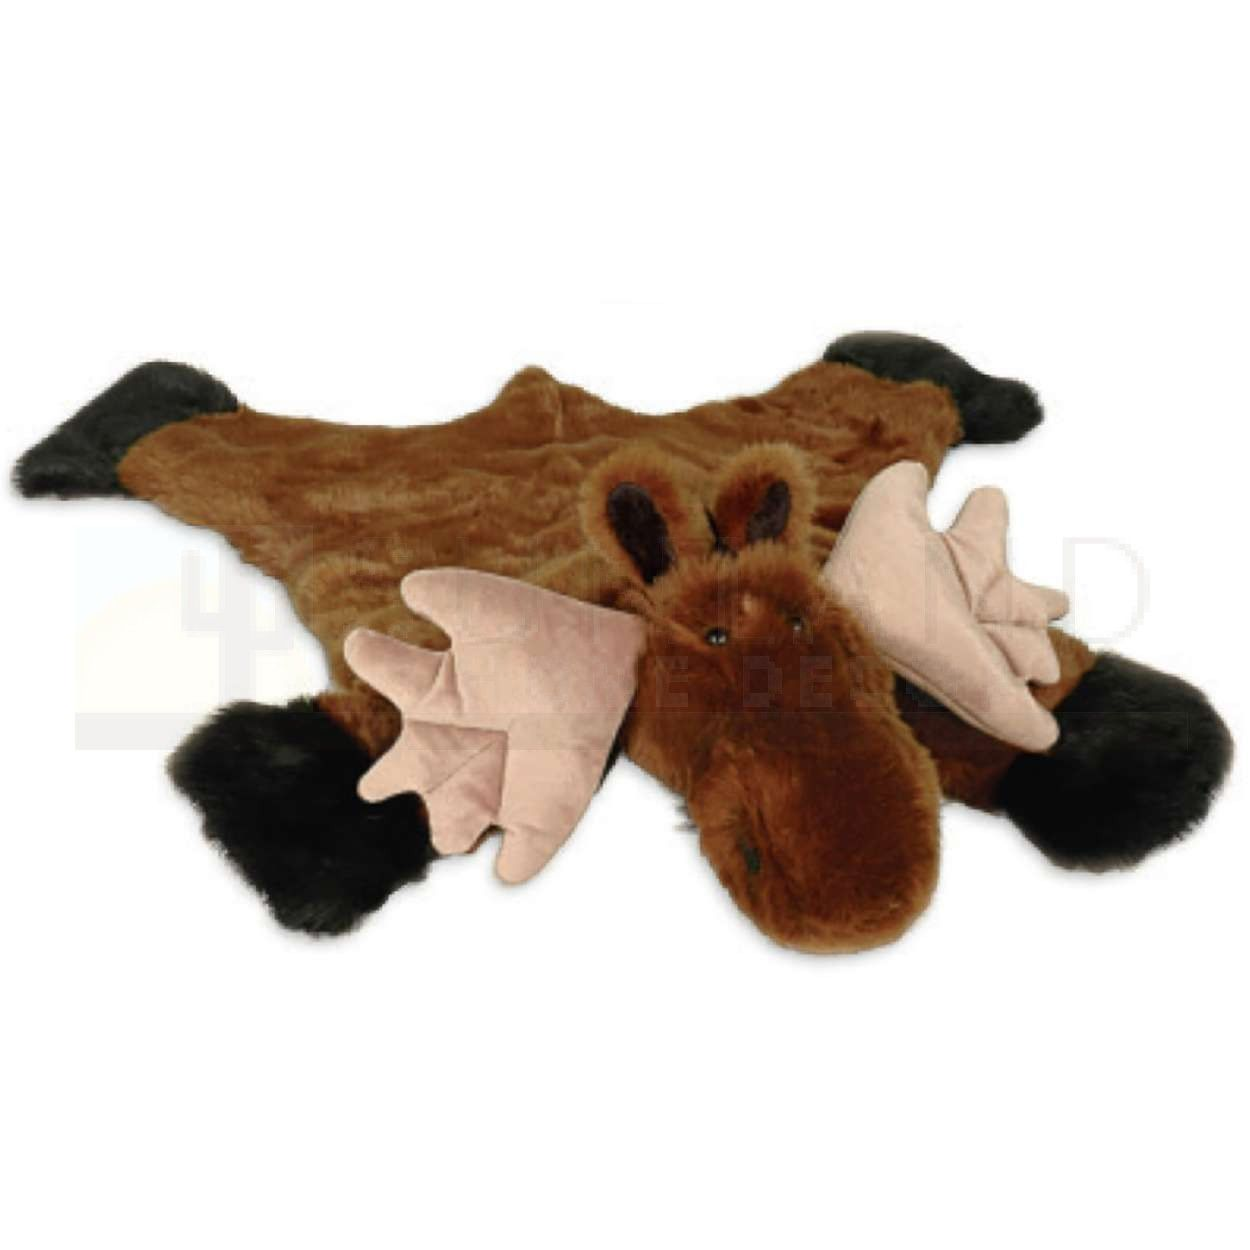 Sunland Home Decor Sunland Home Decor Lmr101 Plush Animal Rug 68in Moose